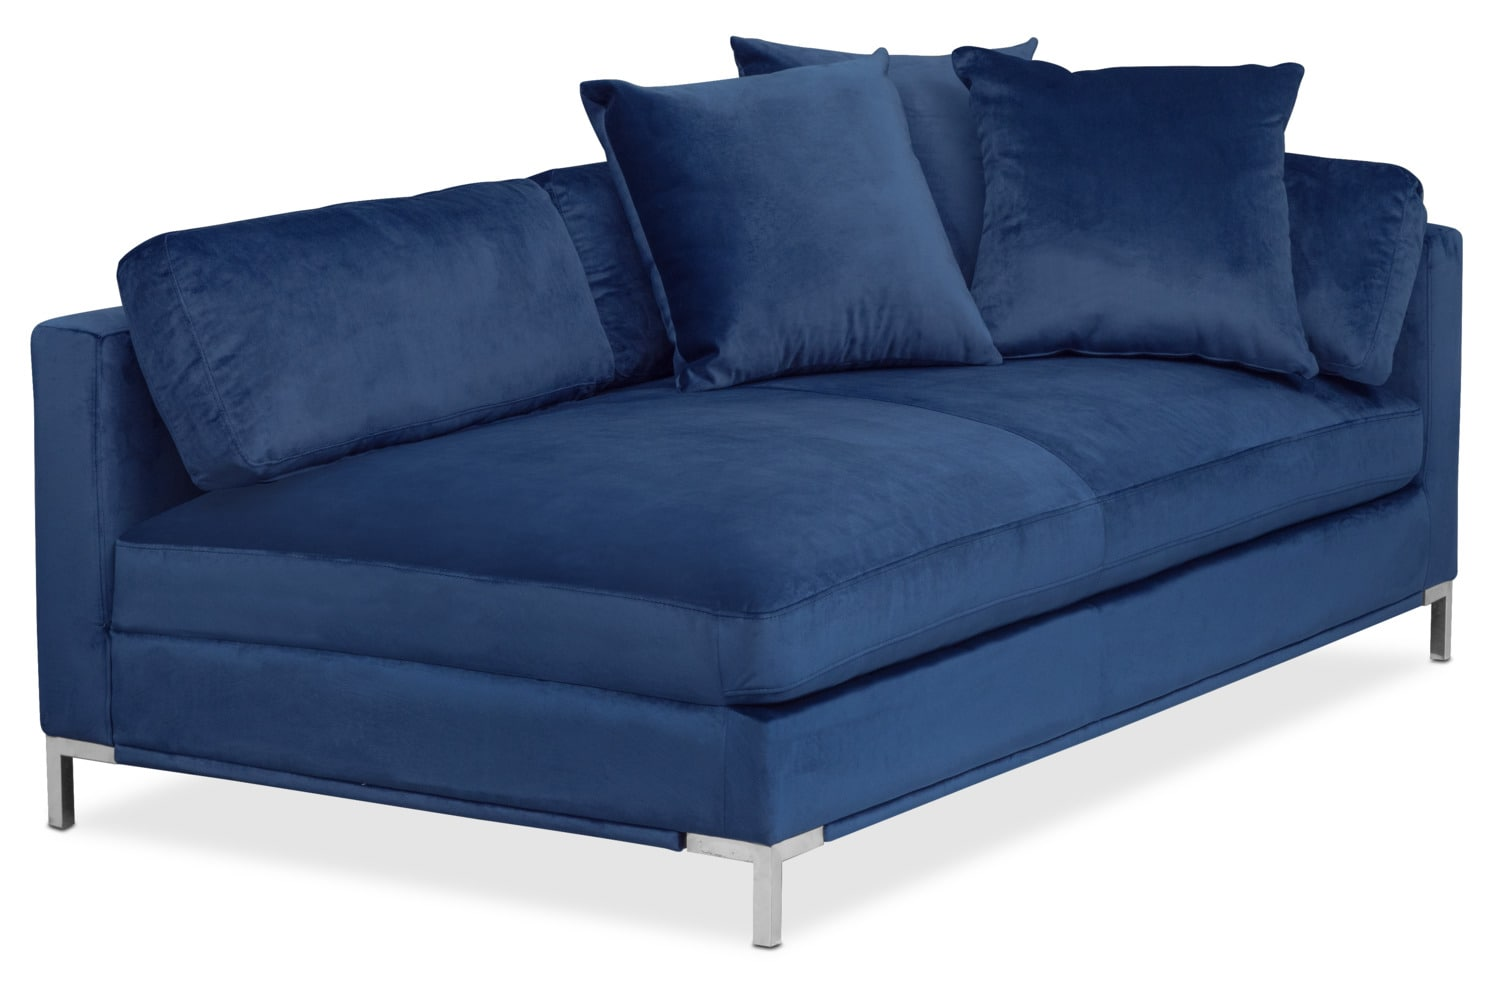 Moda Right-Facing Chaise - Blue